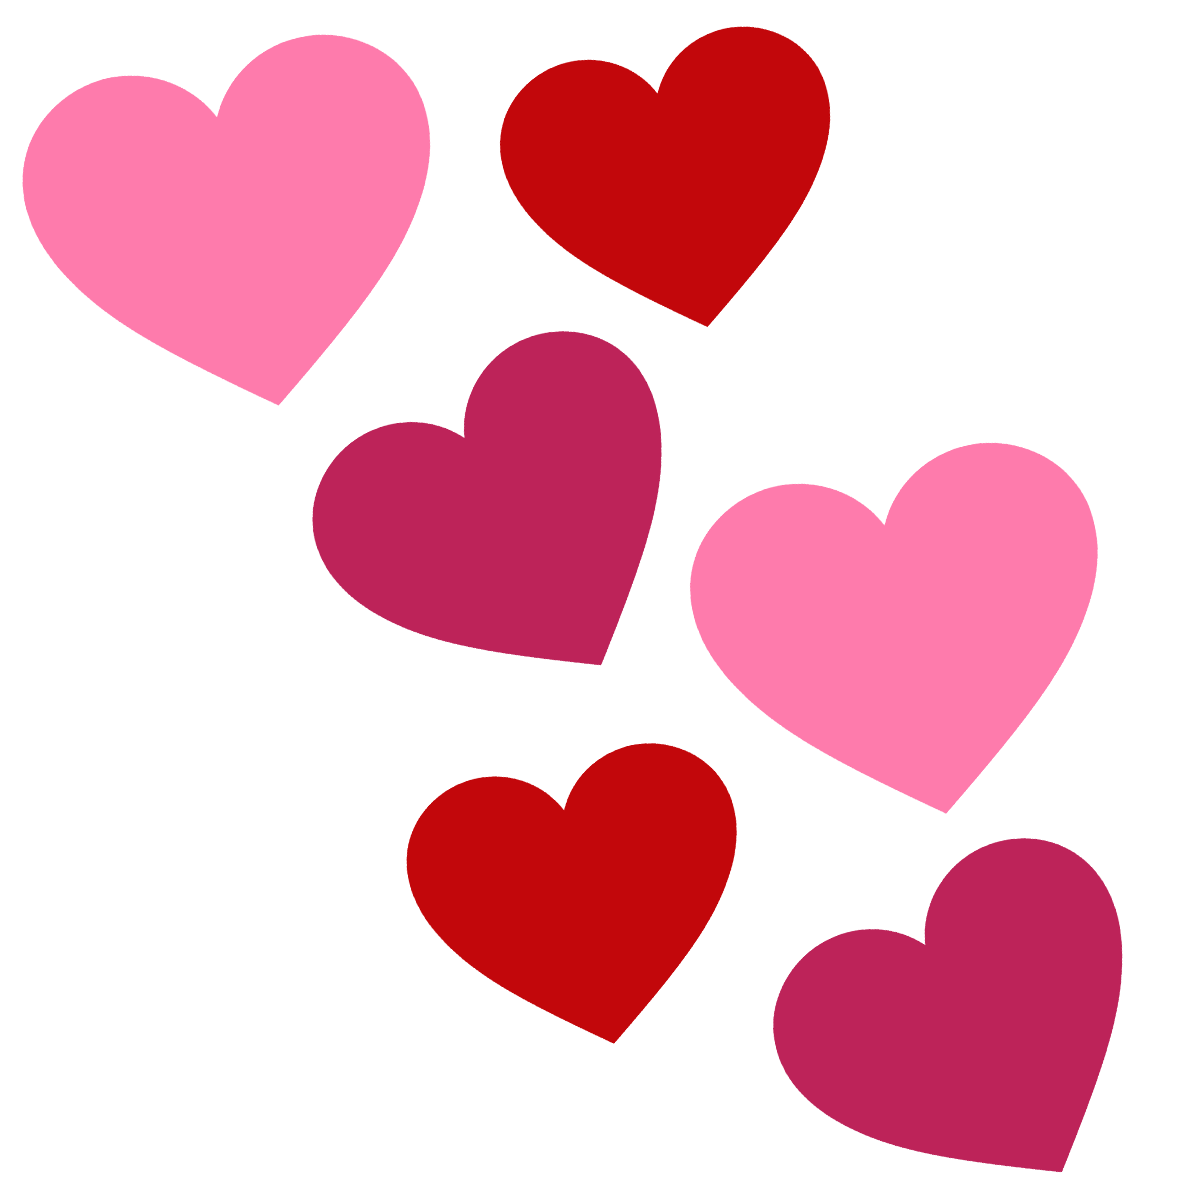 1200x1200 February Valentines Day Clipart For Kids Valentine Image